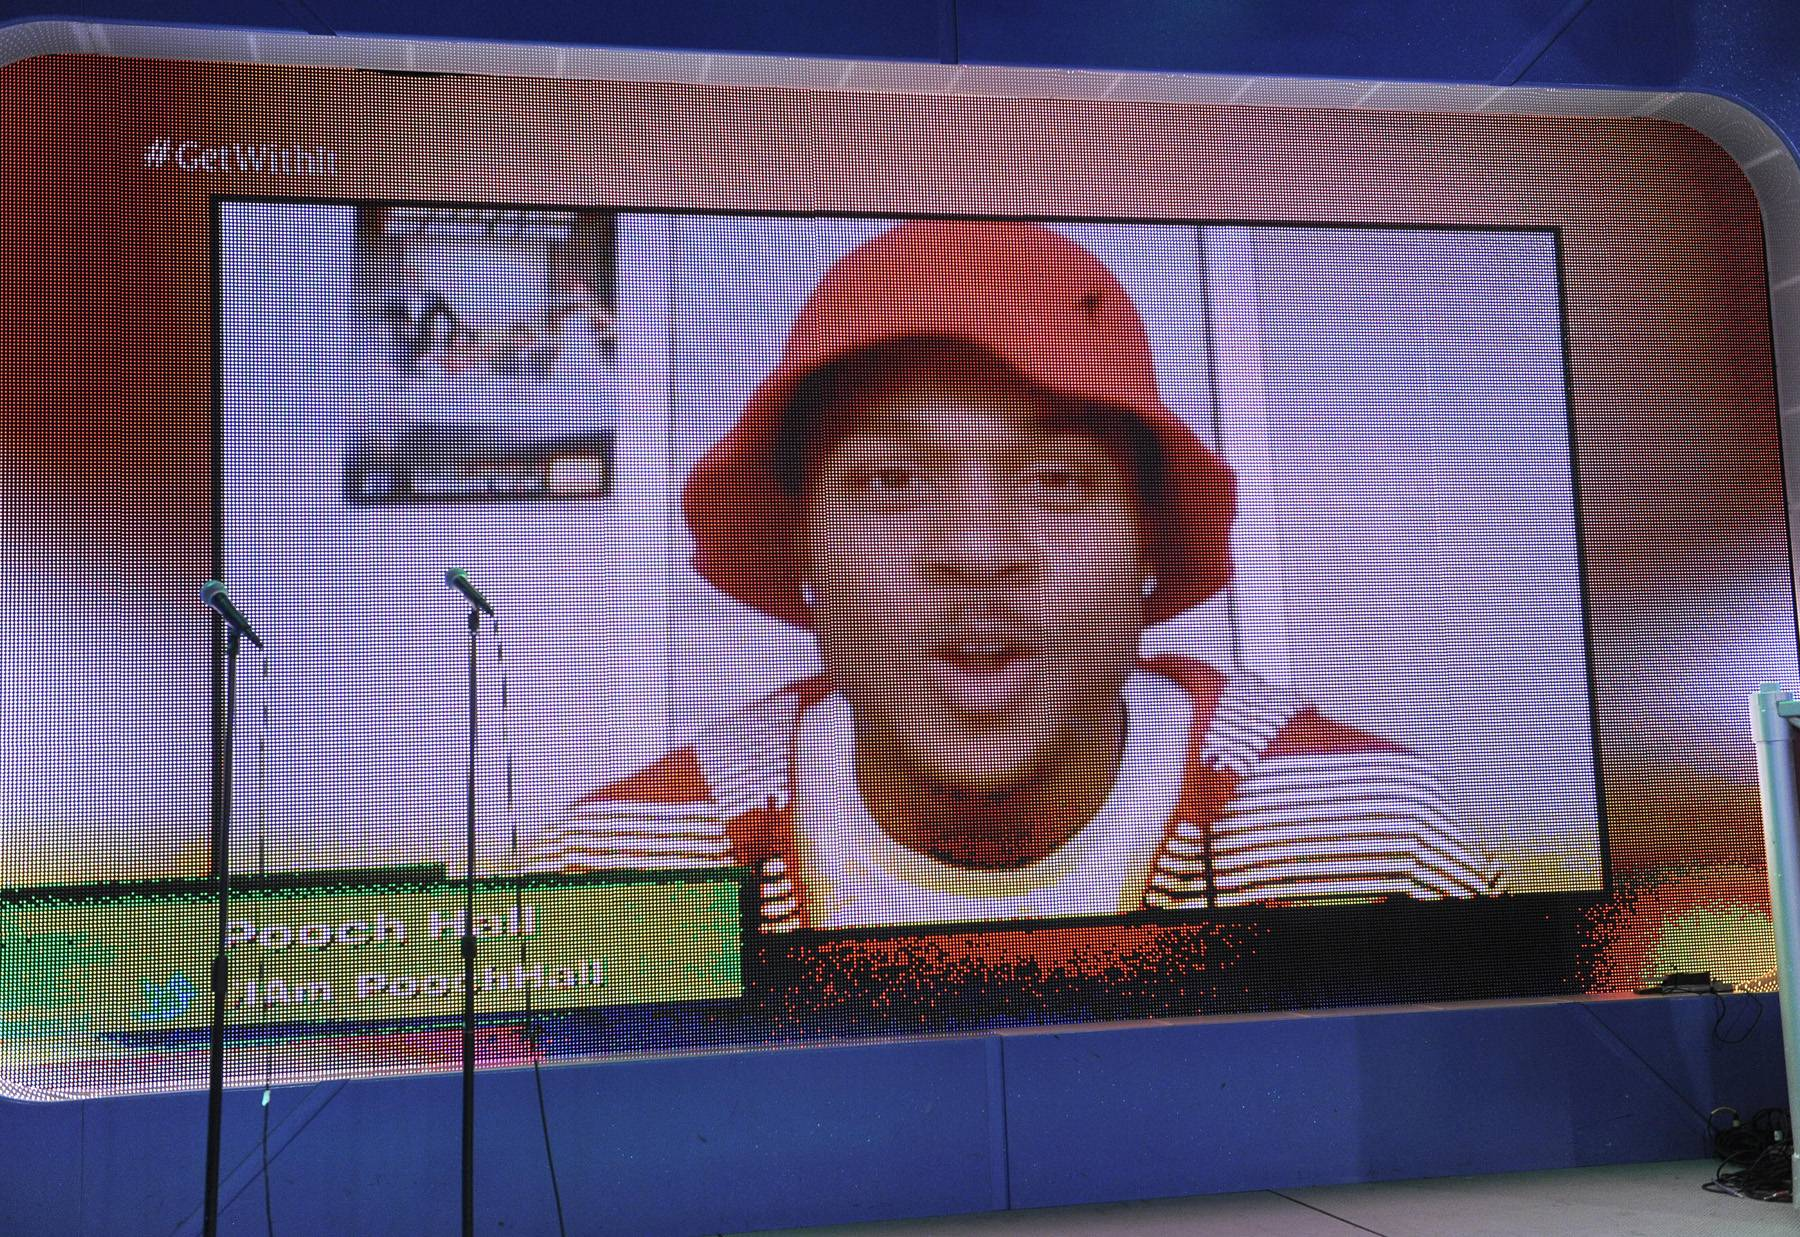 I See You - Terrence J and Rocsi Diaz video chat with Pooch Hall about tonights episode of The Game at 106 & Park, May 1, 2012. (Photo: John Ricard / BET)